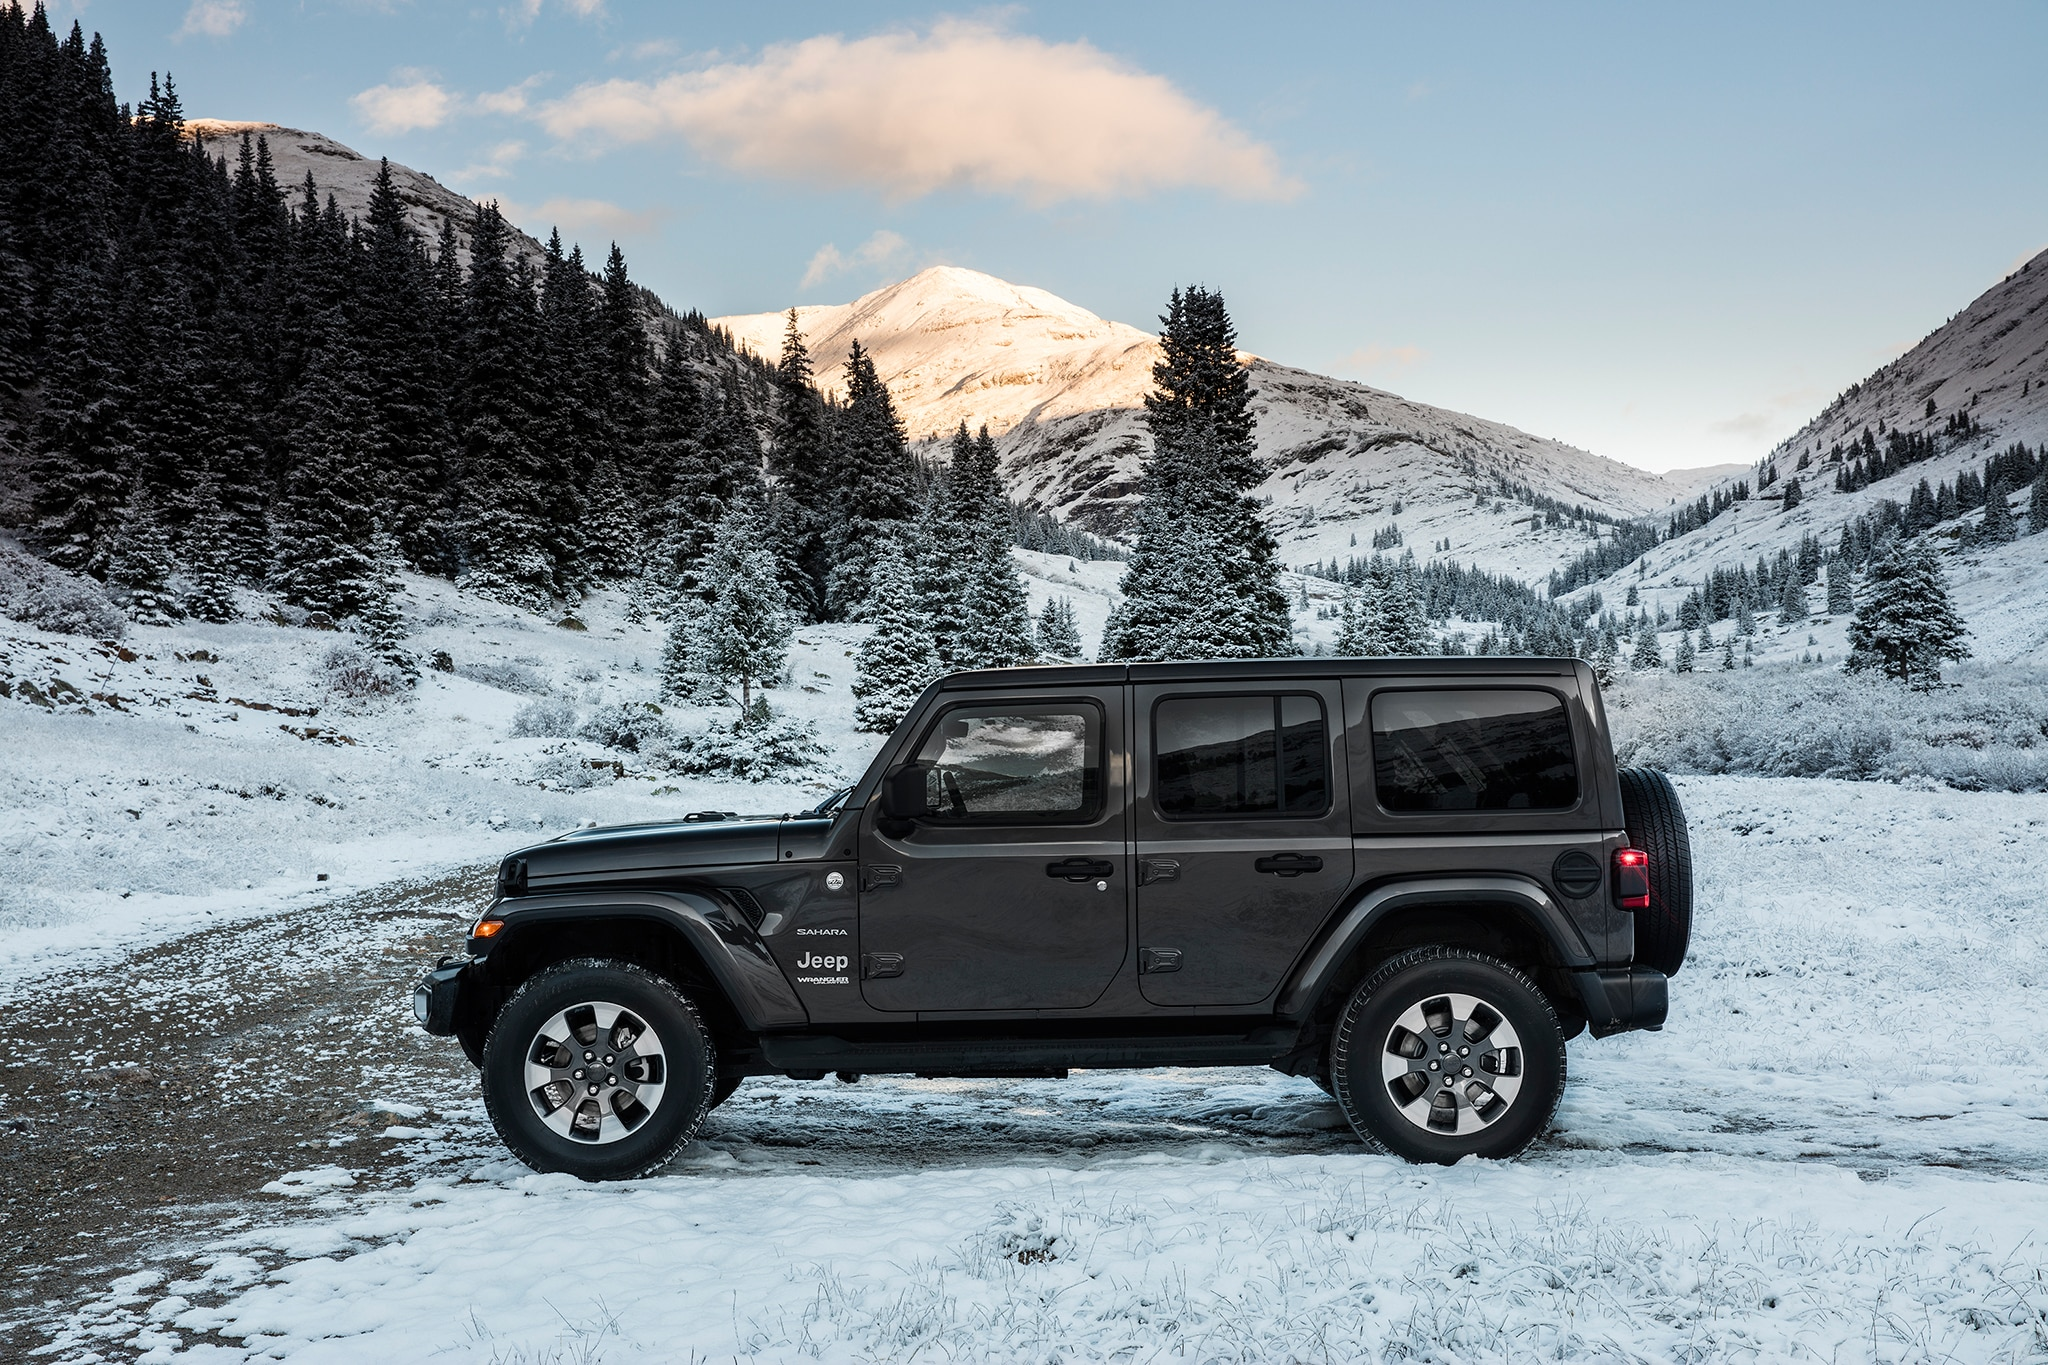 2018-Jeep-Wrangler-Sahara-side-profile-0